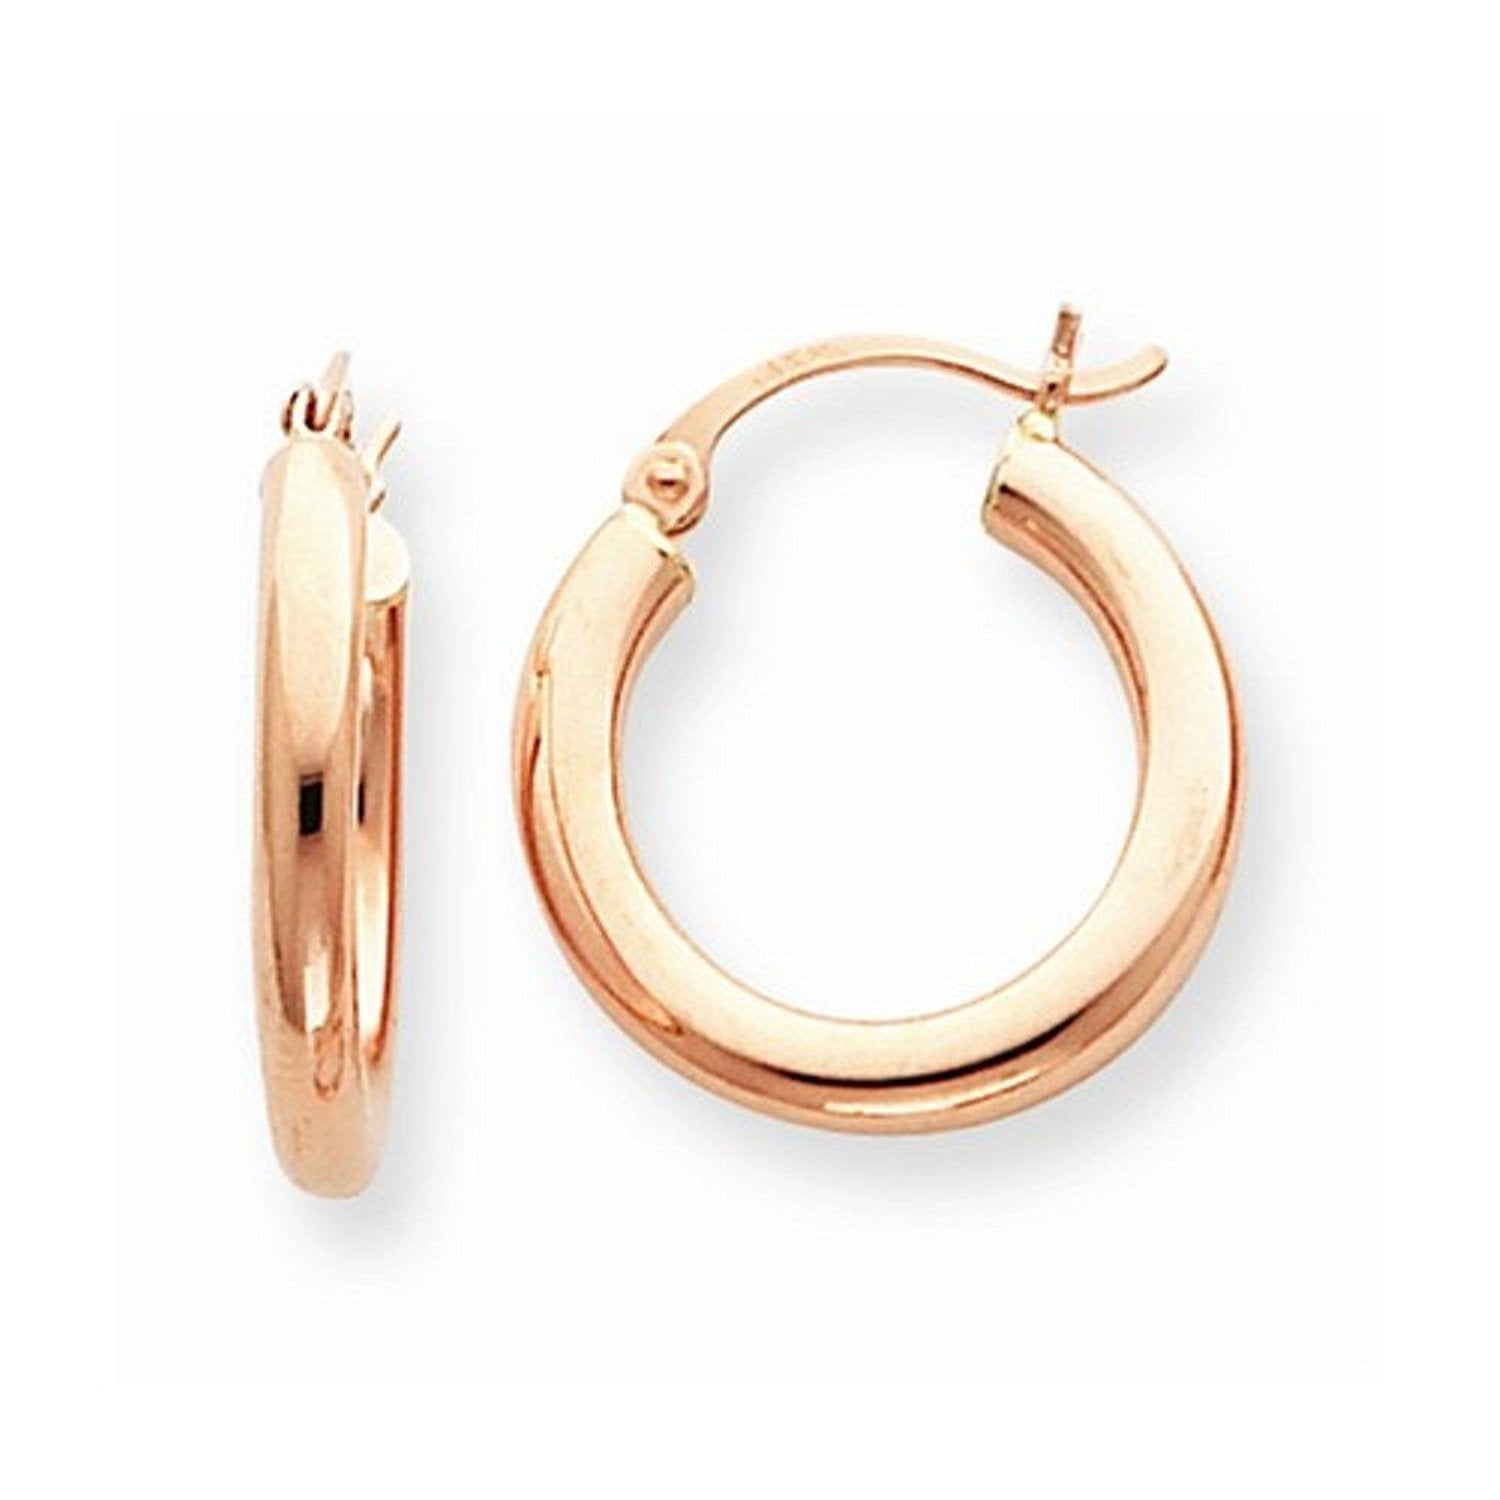 14K Rose Gold 20mm x 3mm Classic Round Hoop Earrings